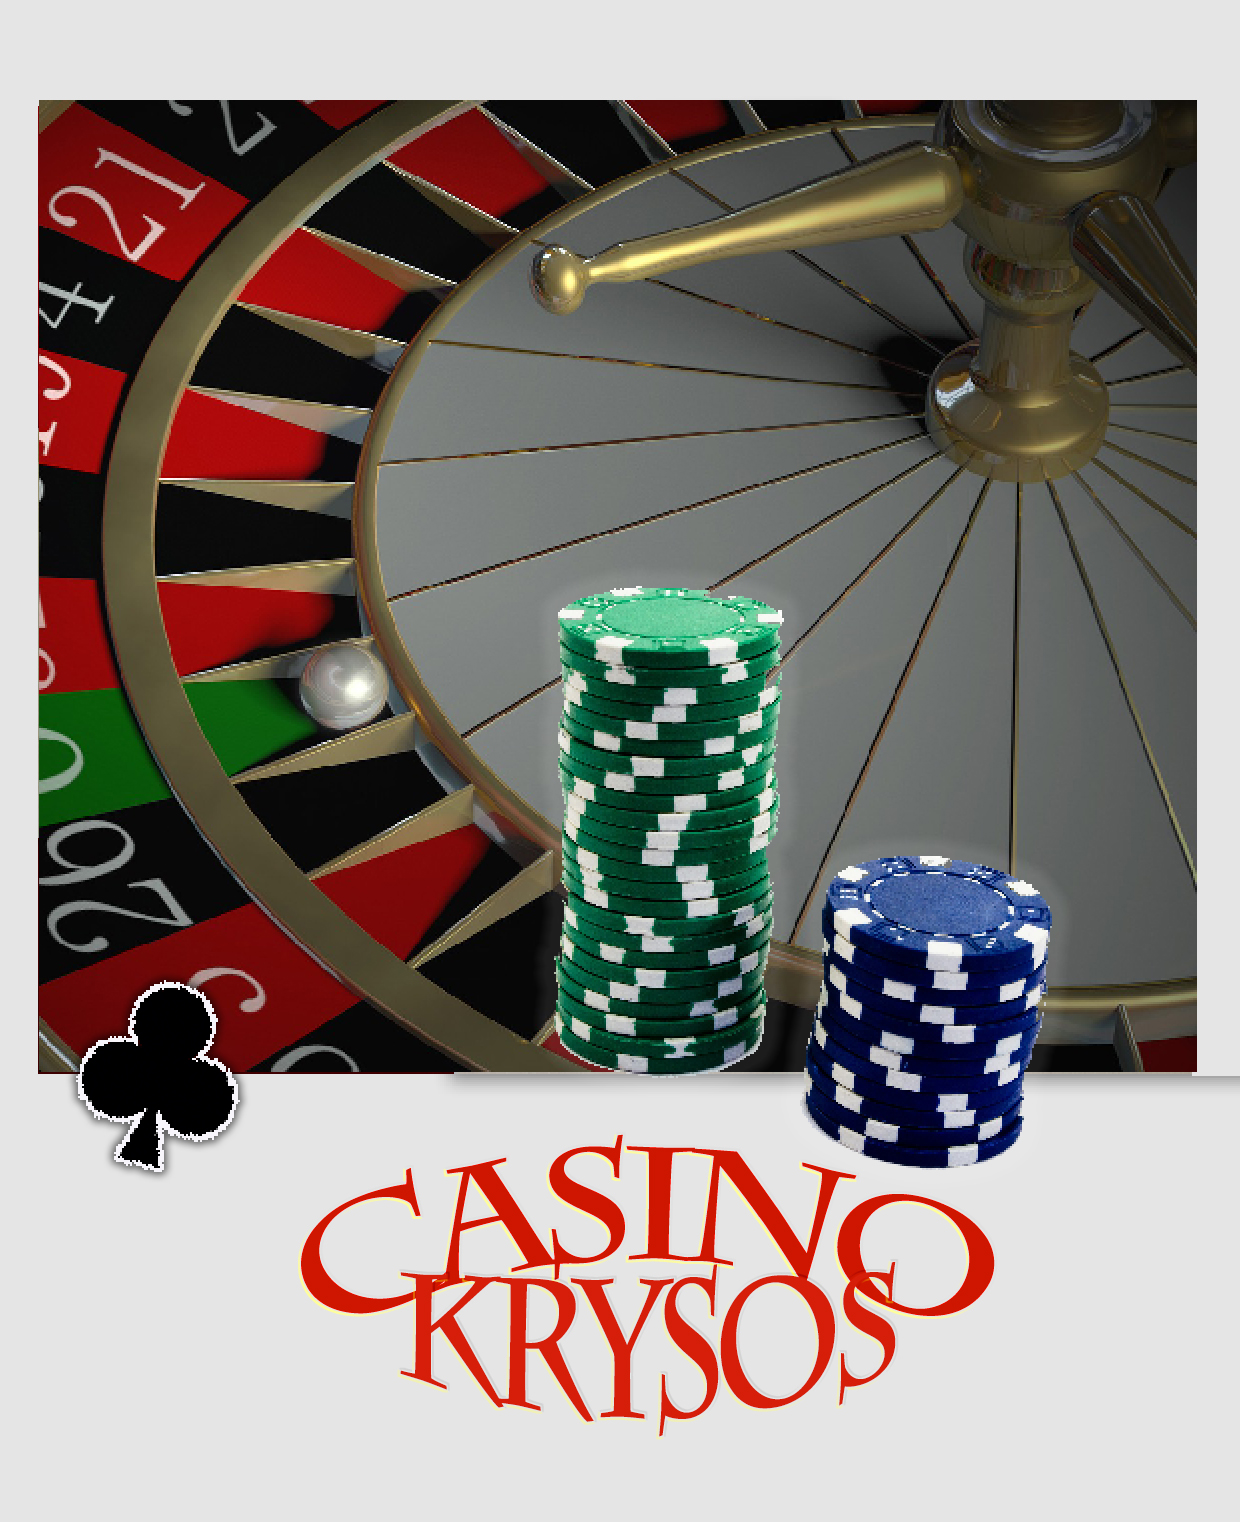 Pocket Investigations - Casino Krysos